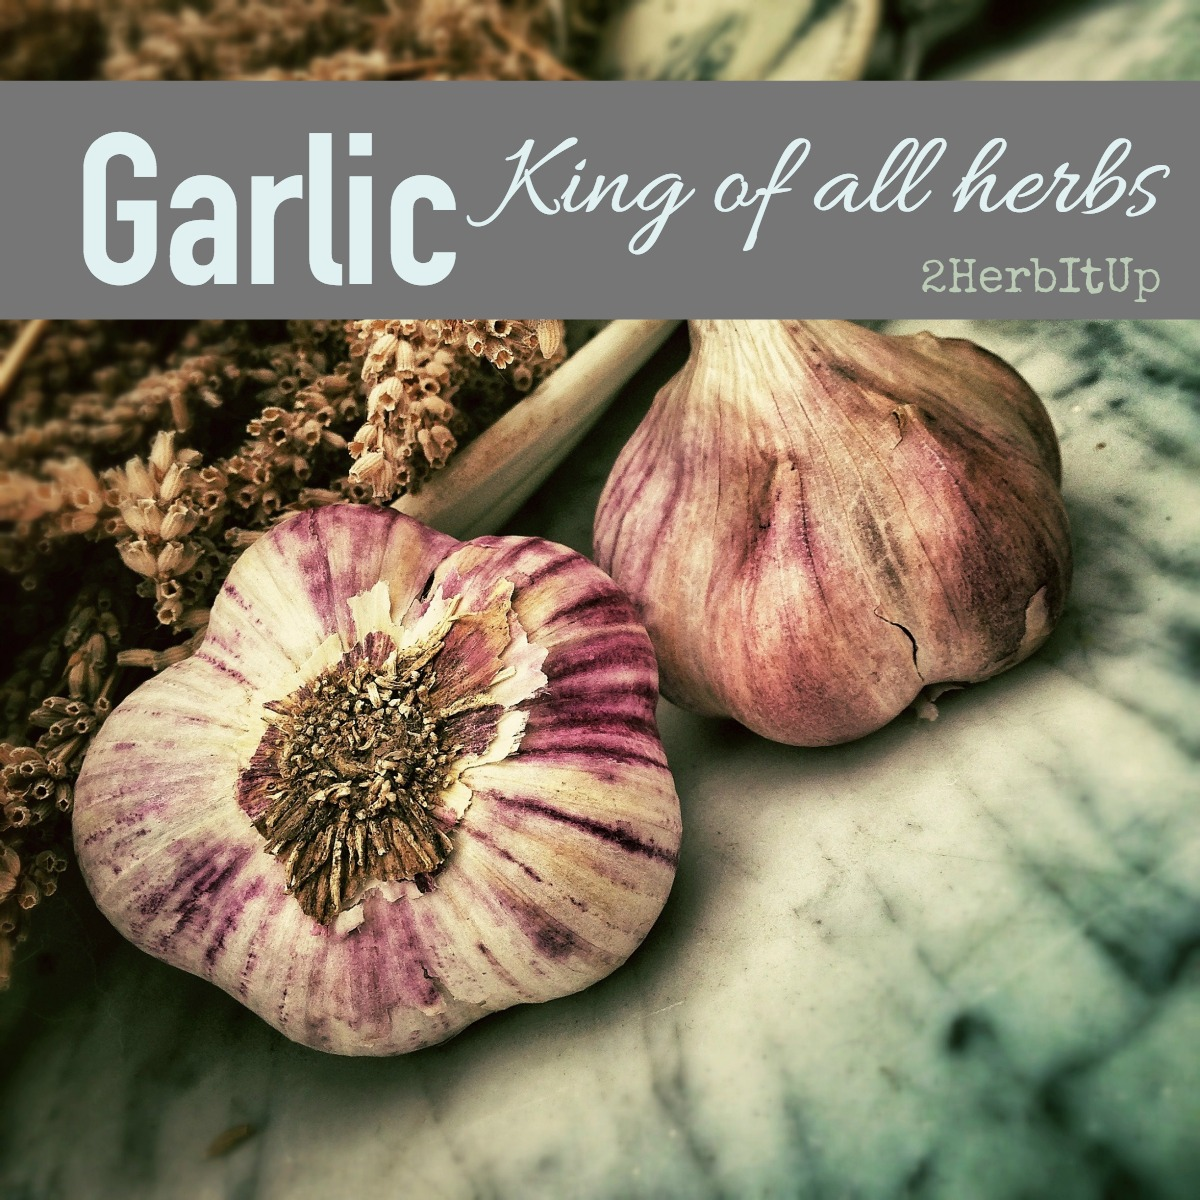 Read to learn all about the properties and uses of garlic.